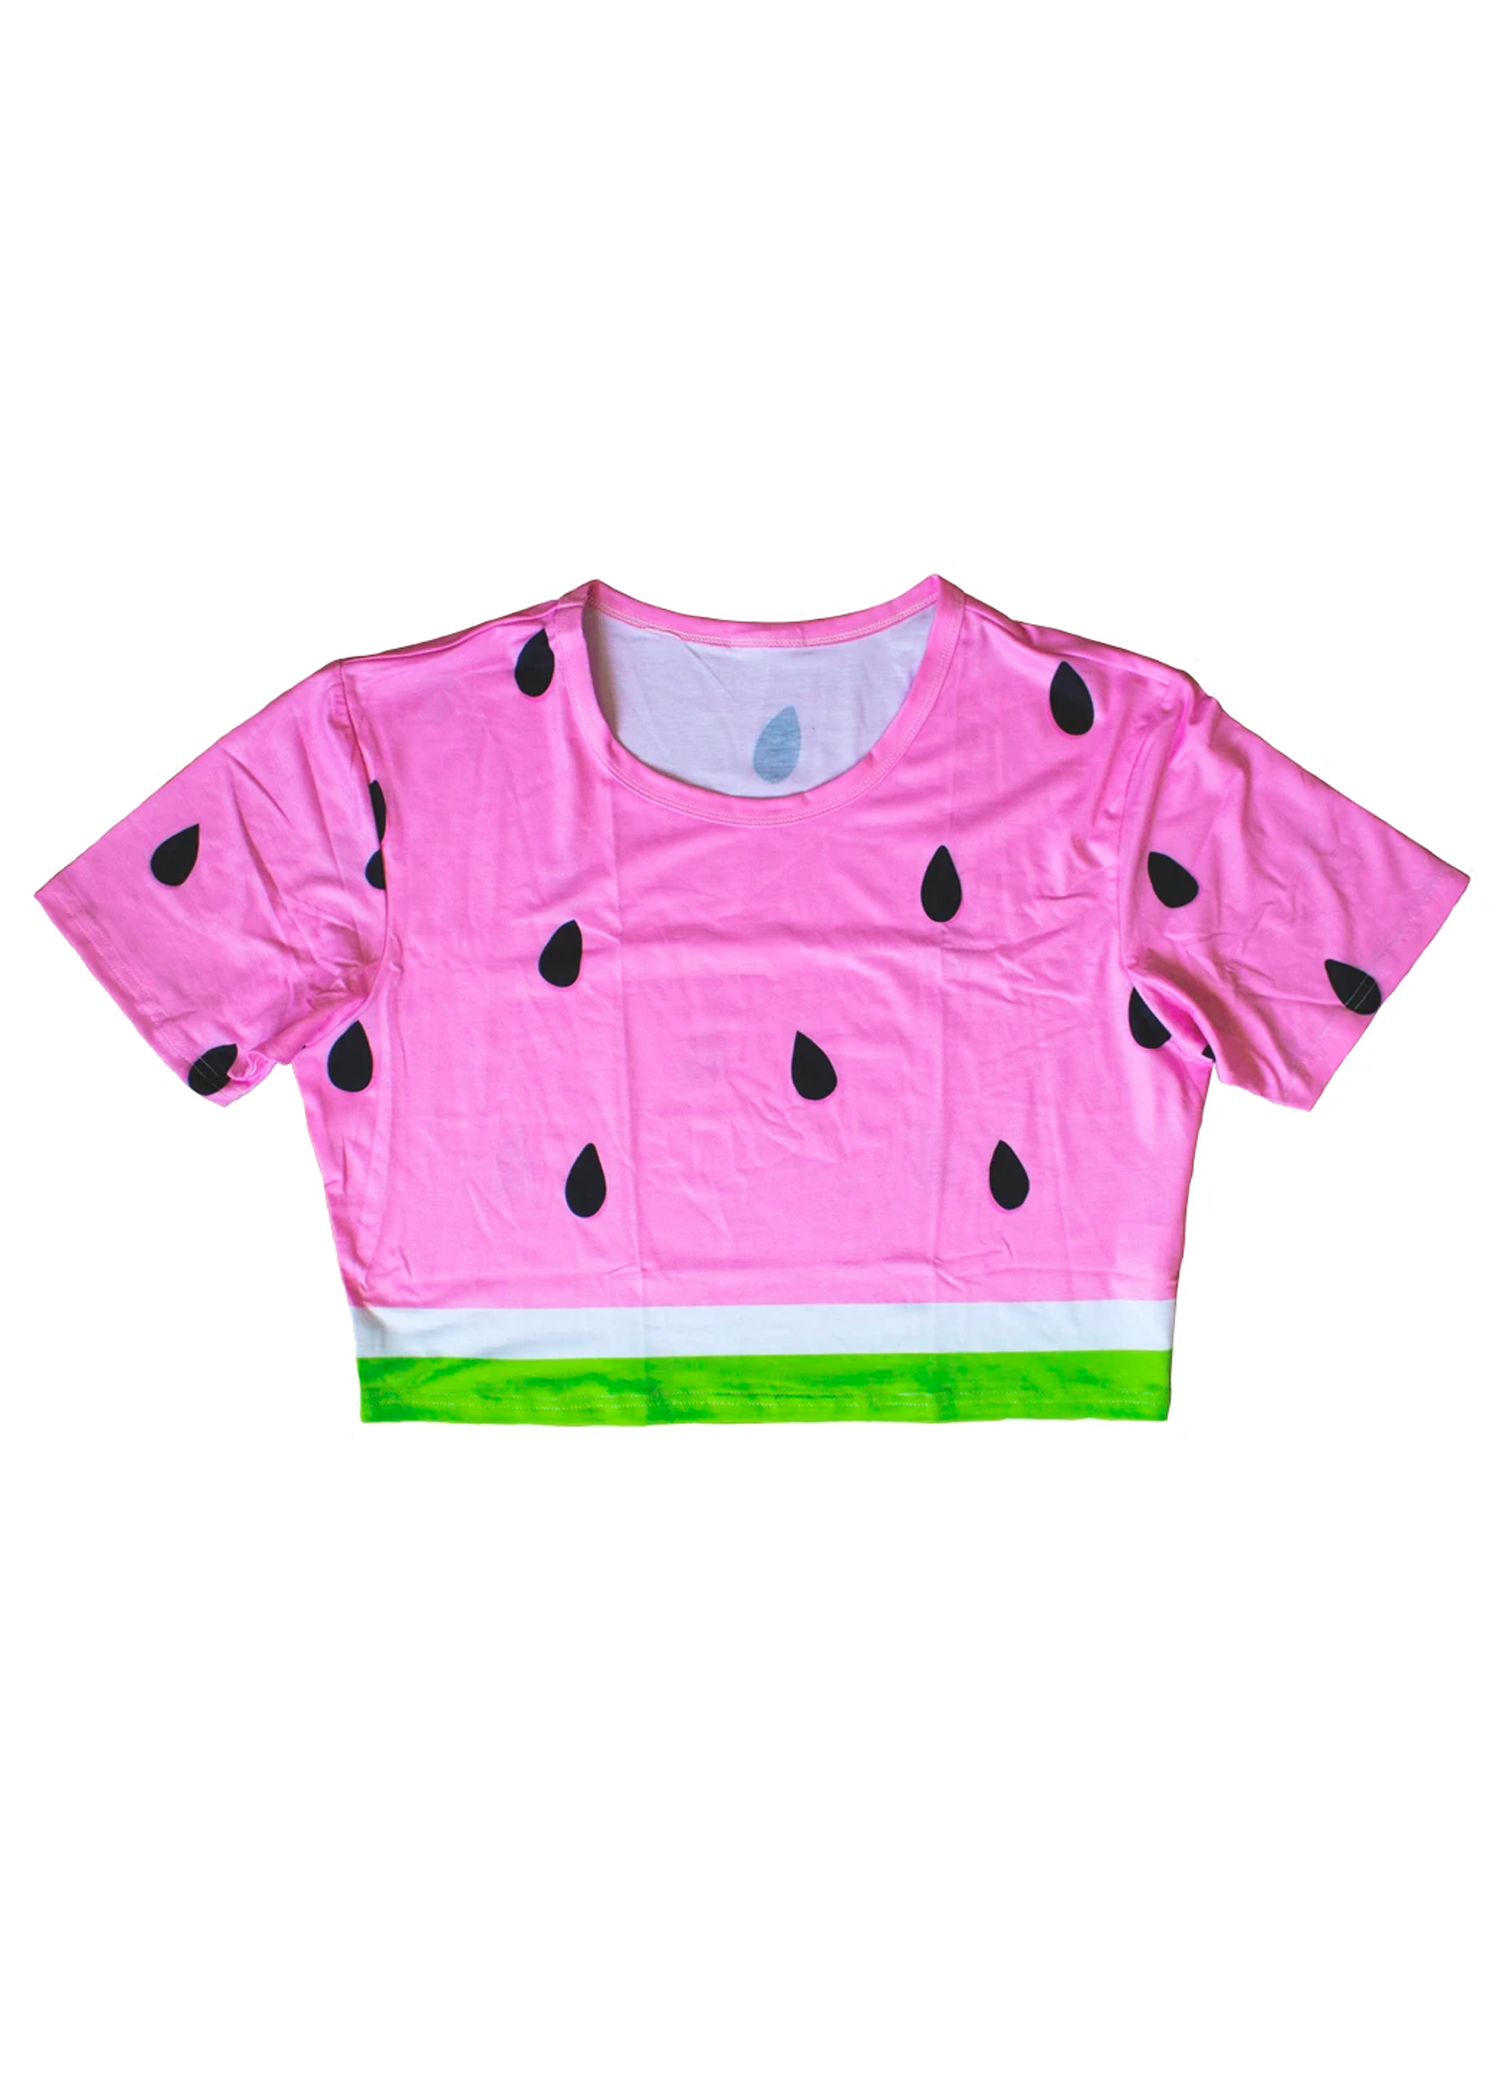 watermelon crop tee